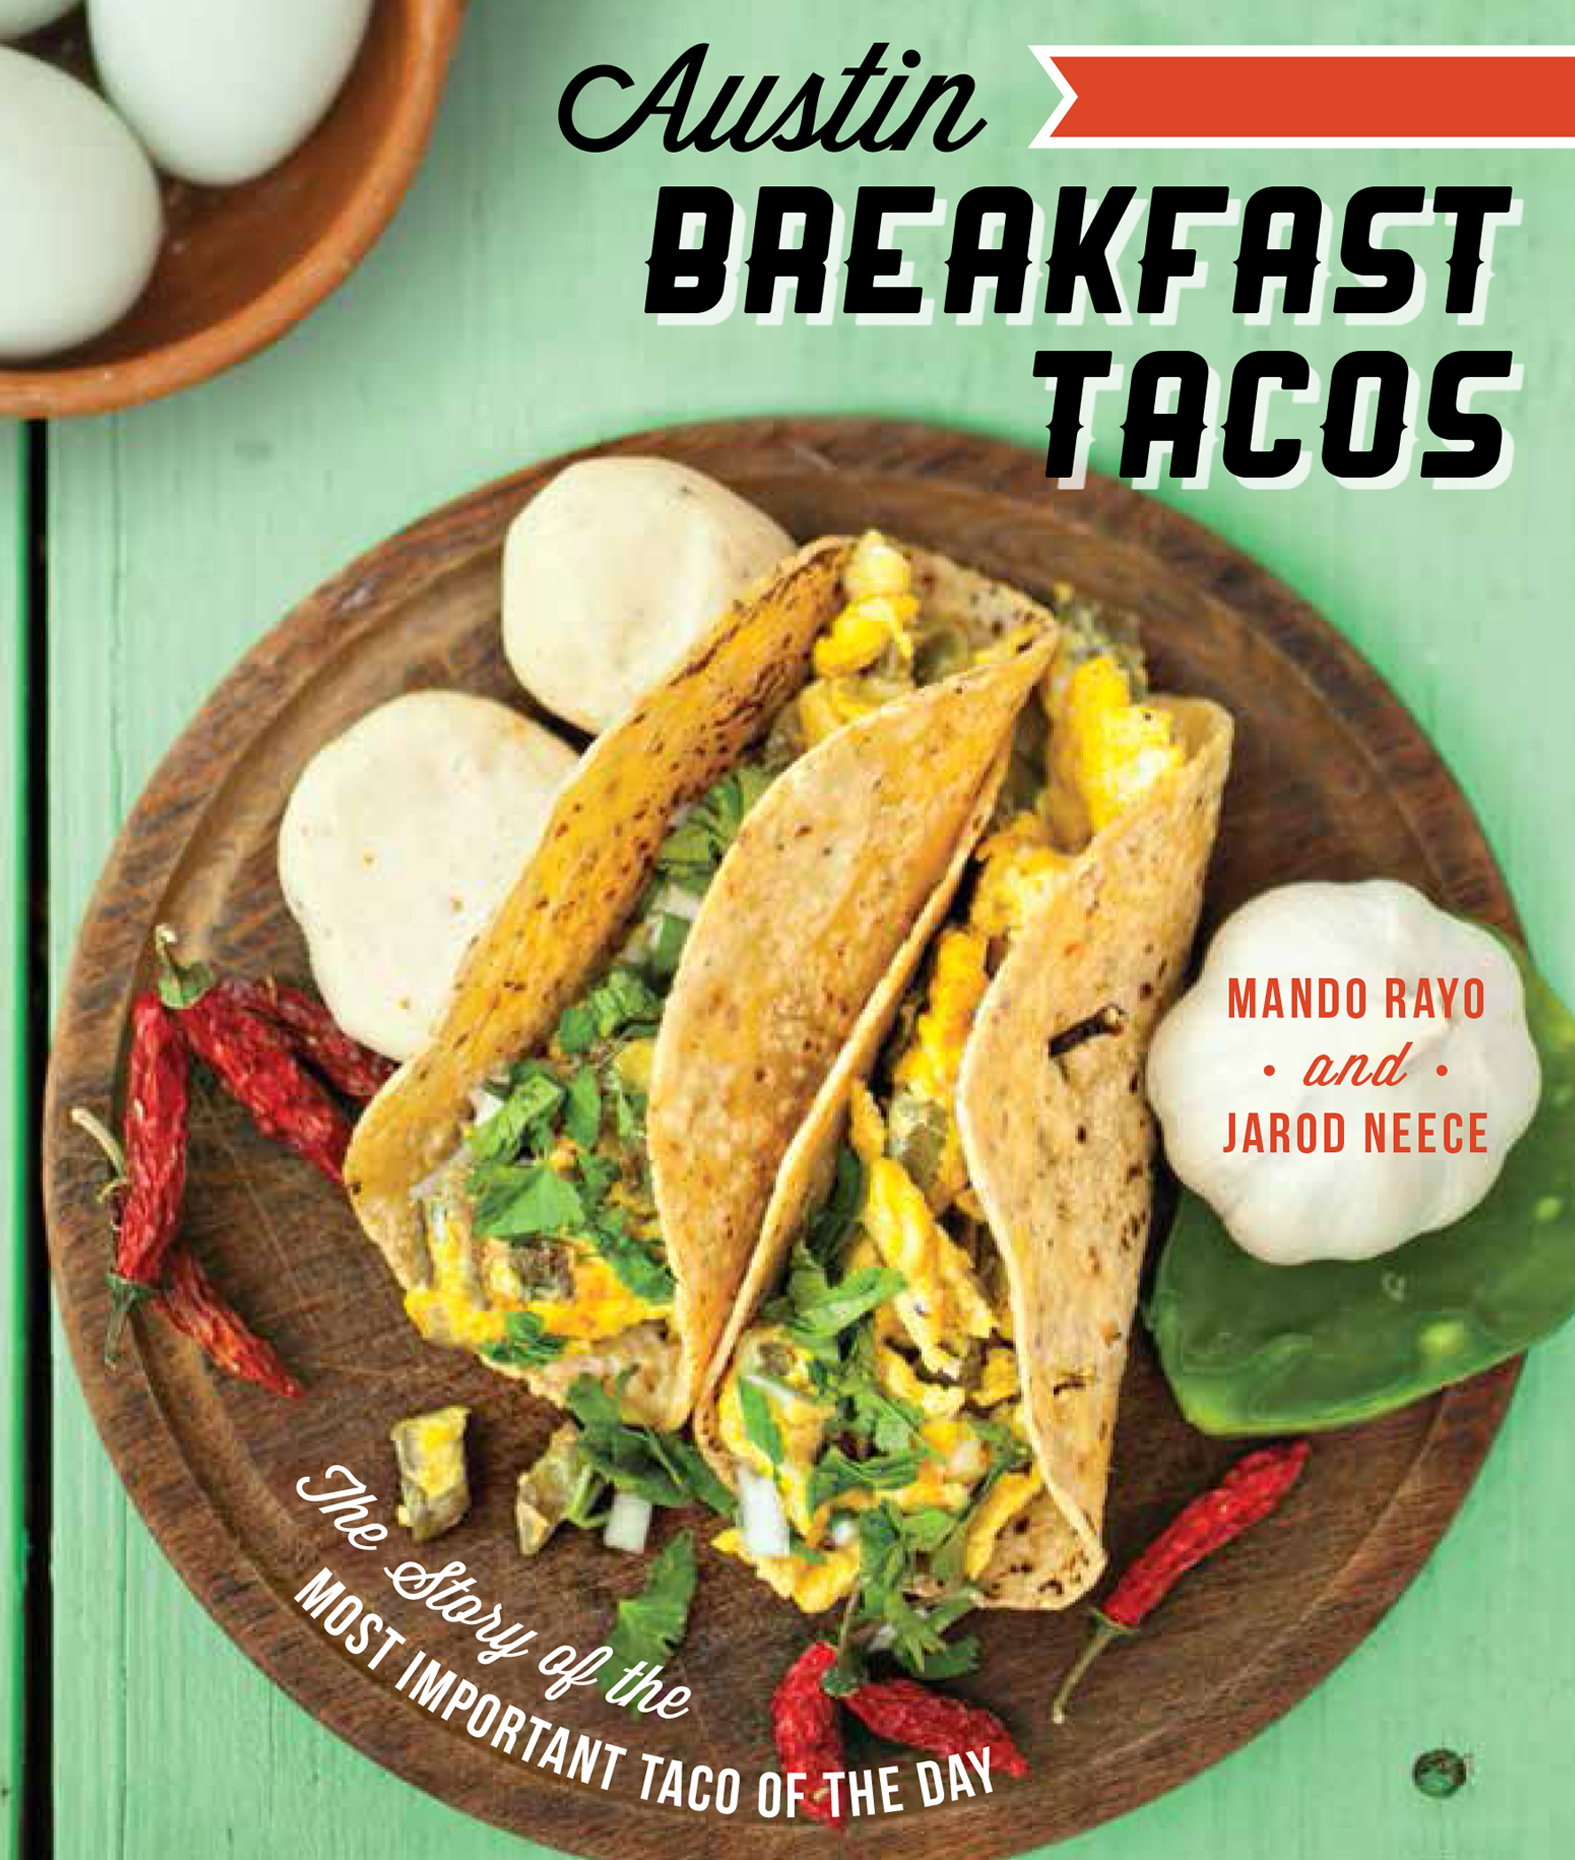 Austin Breakfast Tacos The Story of the Most Important Taco of the Day